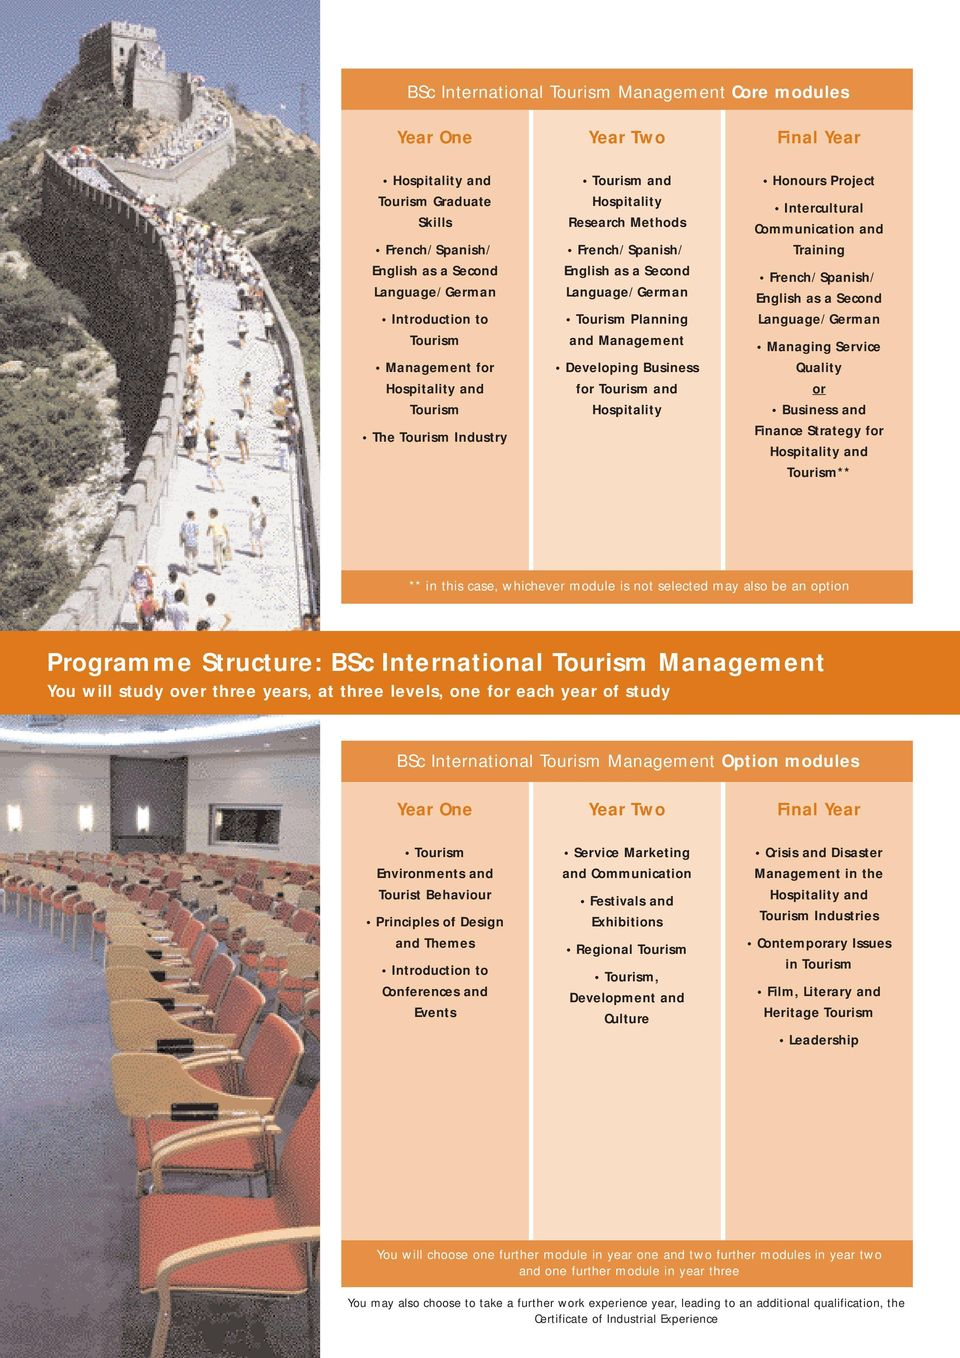 International Management You will study over three years, at three levels, one for each year of study BSc International Management Option modules Environments and Tourist Behaviour Principles of